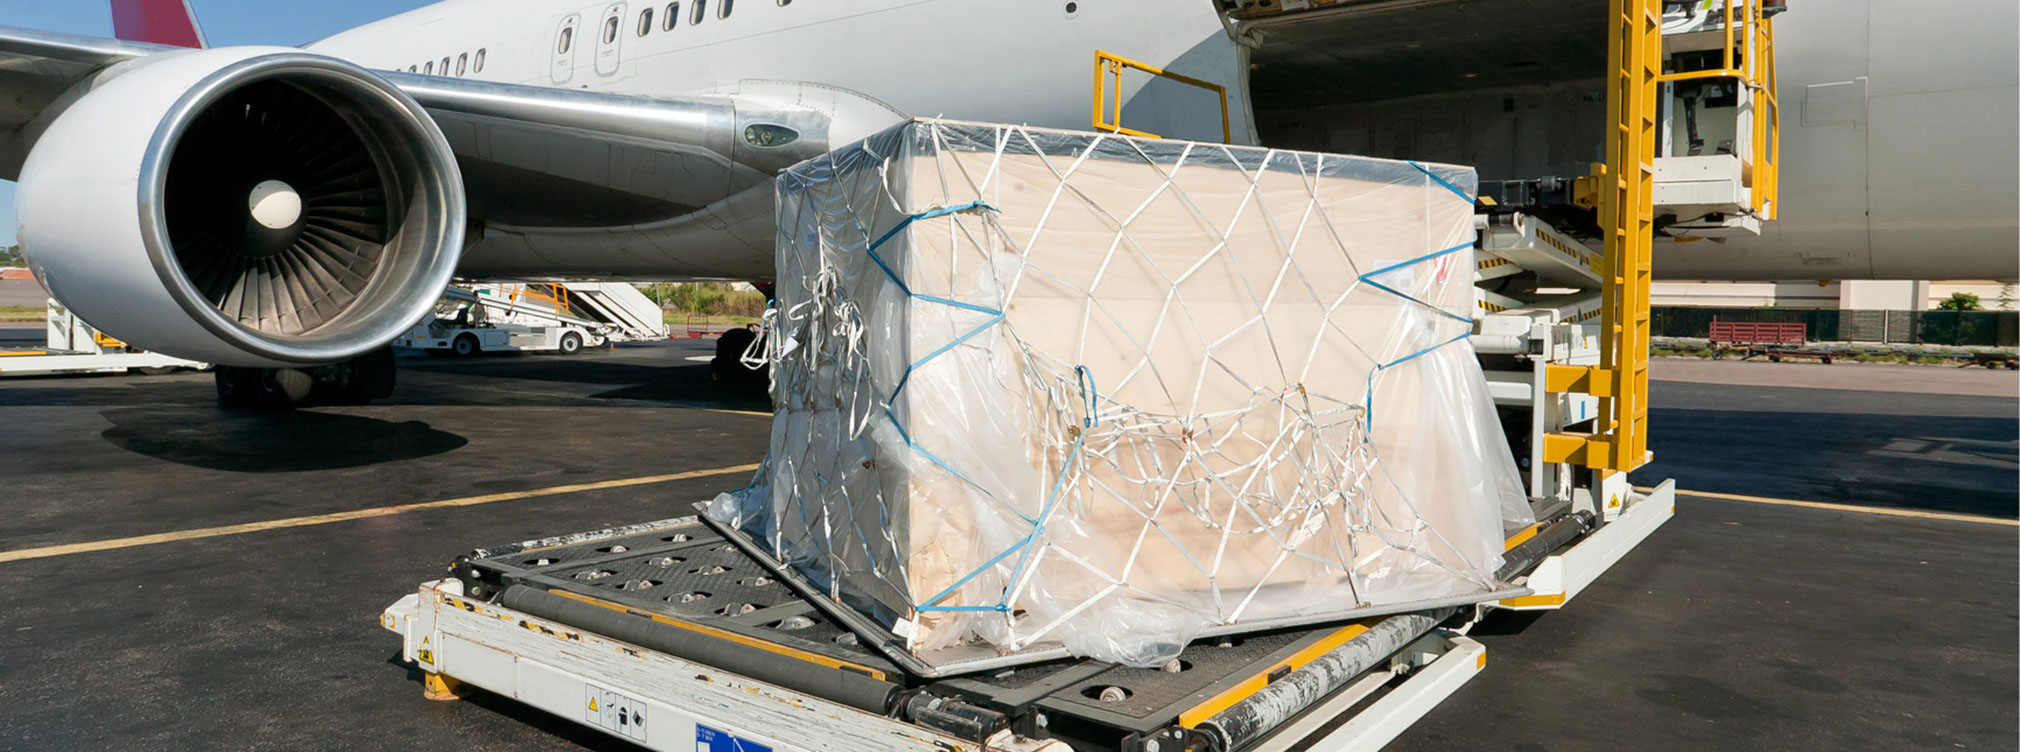 Extra wide polythene sheeting for protection of air cargo